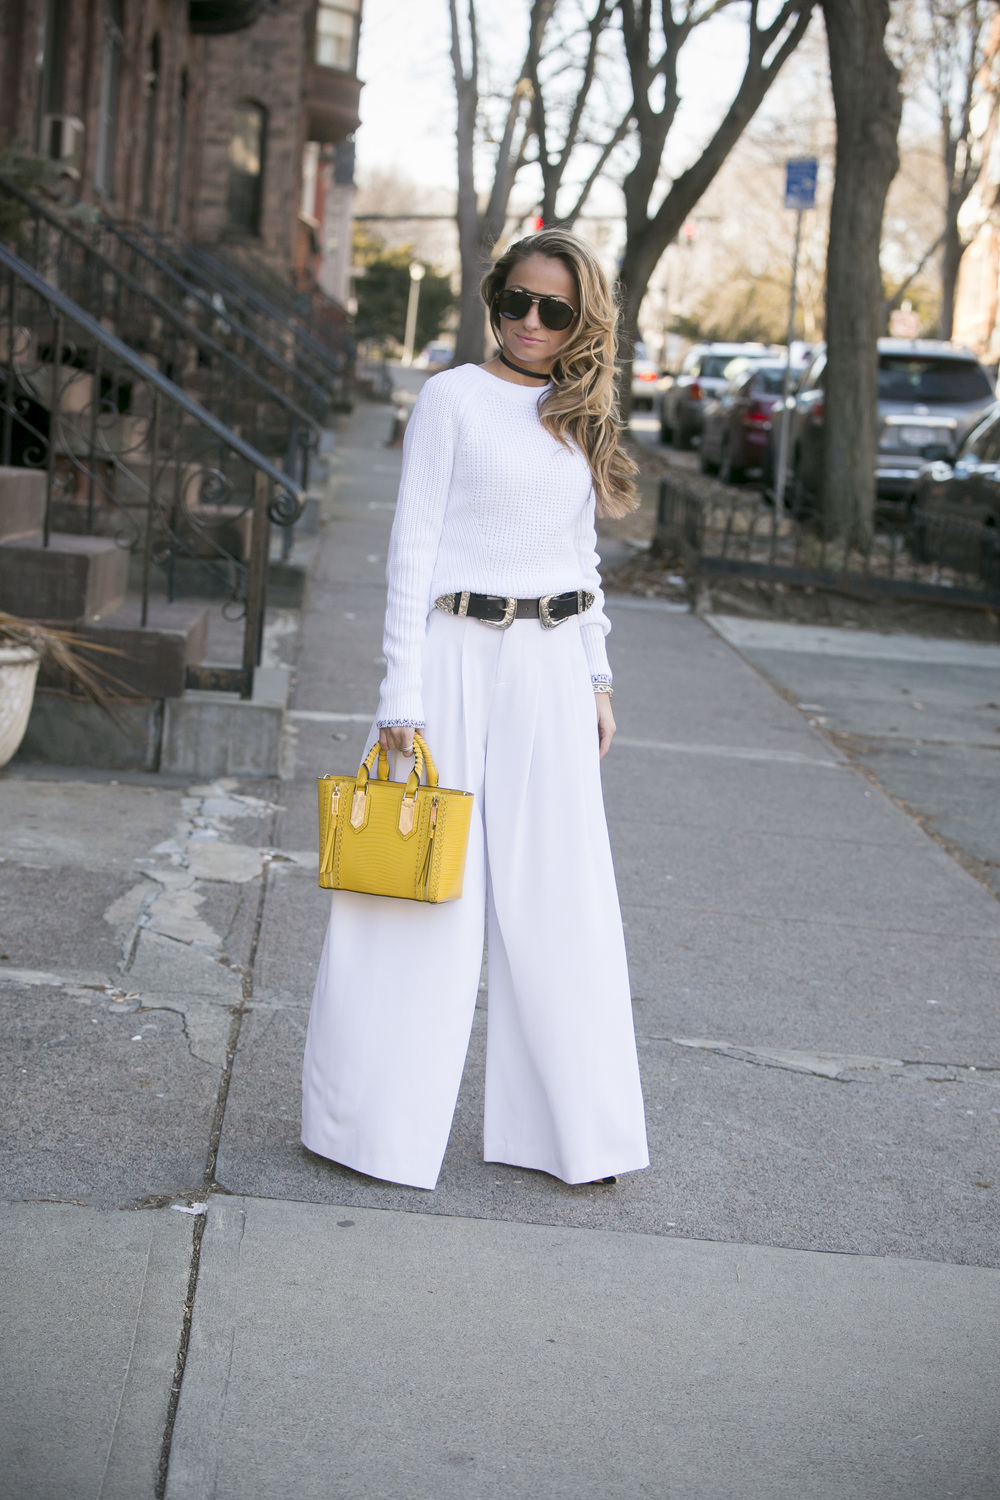 all white outfit done by Lauren Recchia for the fashion blog north of manhattan